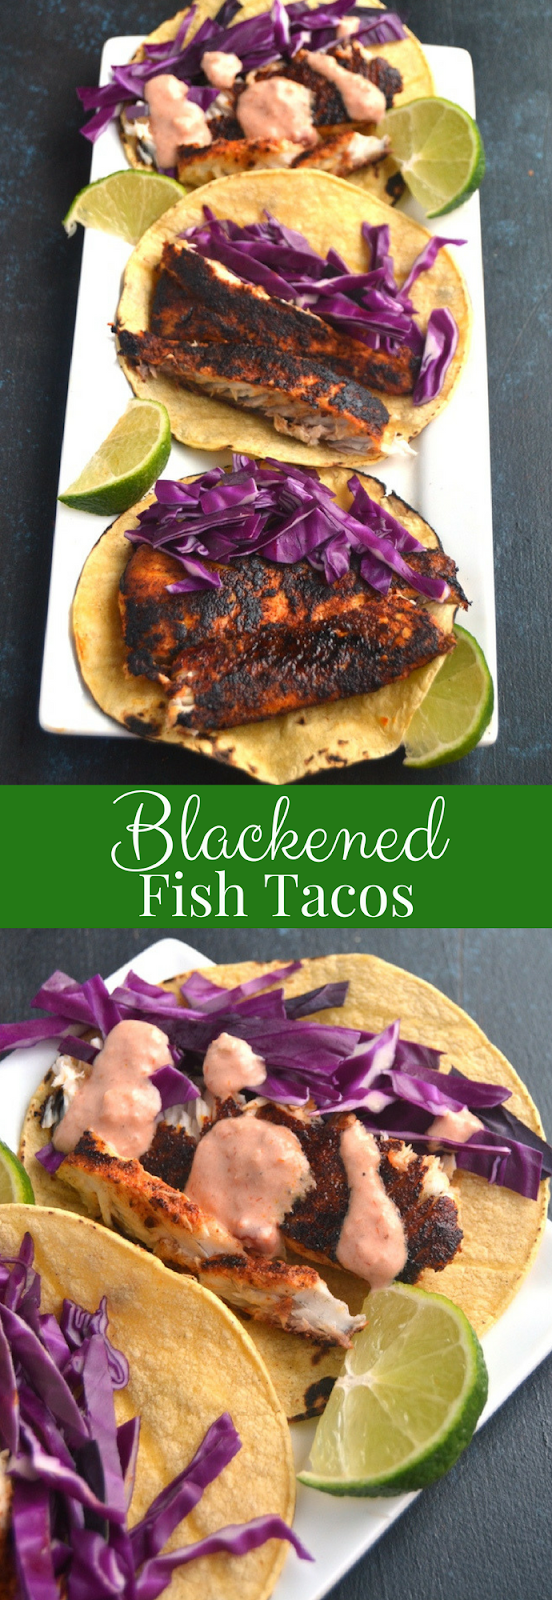 Alaska Blackened Fish Tacos features dry rubbed, blackened sauteed black cod with crunchy red cabbage, fresh lime juice and a creamy salsa dressing in a toasted corn tortilla! www.nutritionistreviews.com